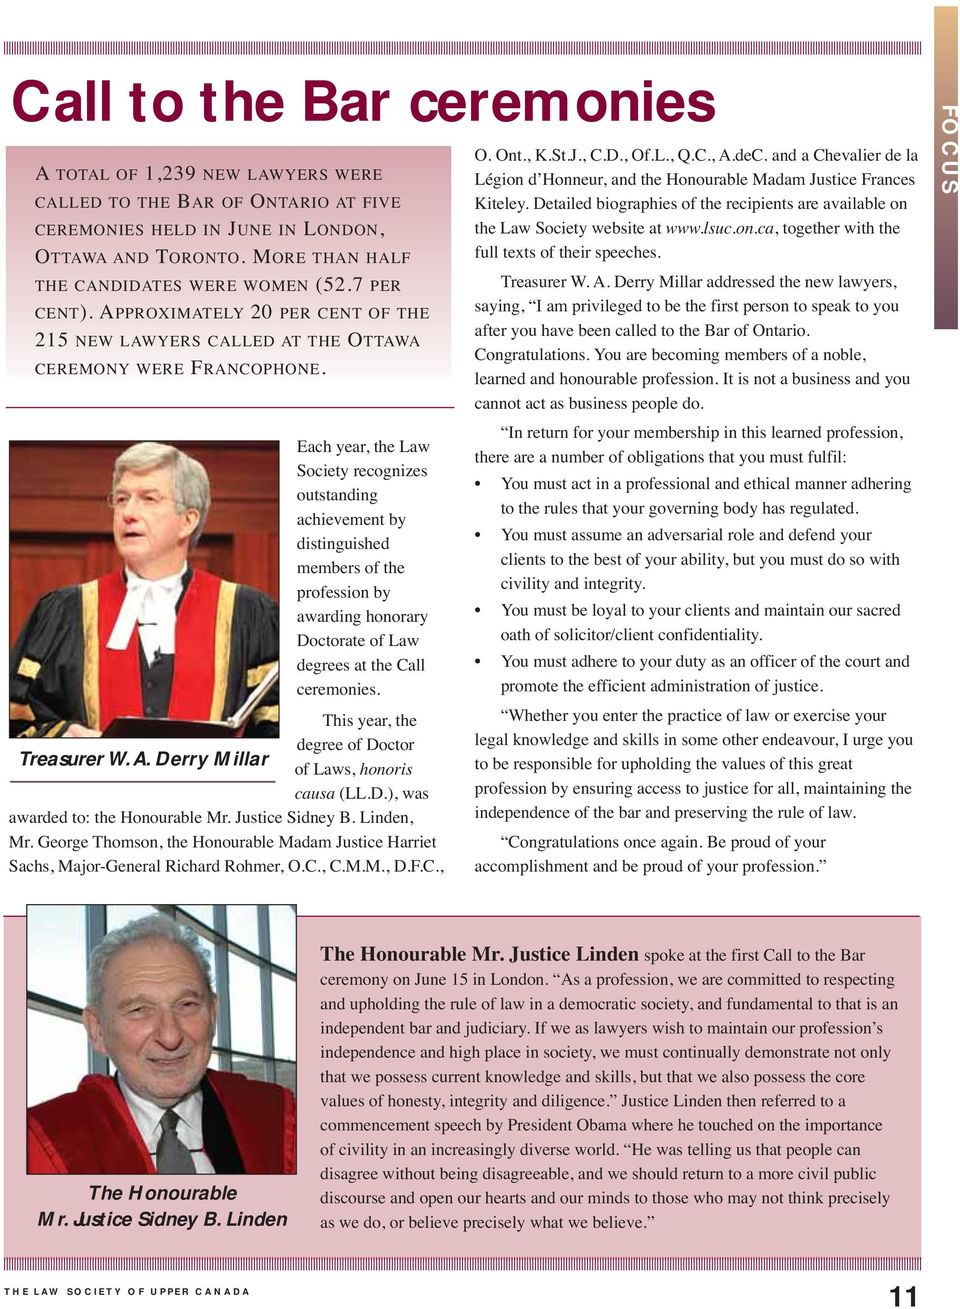 Each year, the Law Society recognizes outstanding achievement by distinguished members of the profession by awarding honorary Doctorate of Law degrees at the Call ceremonies.